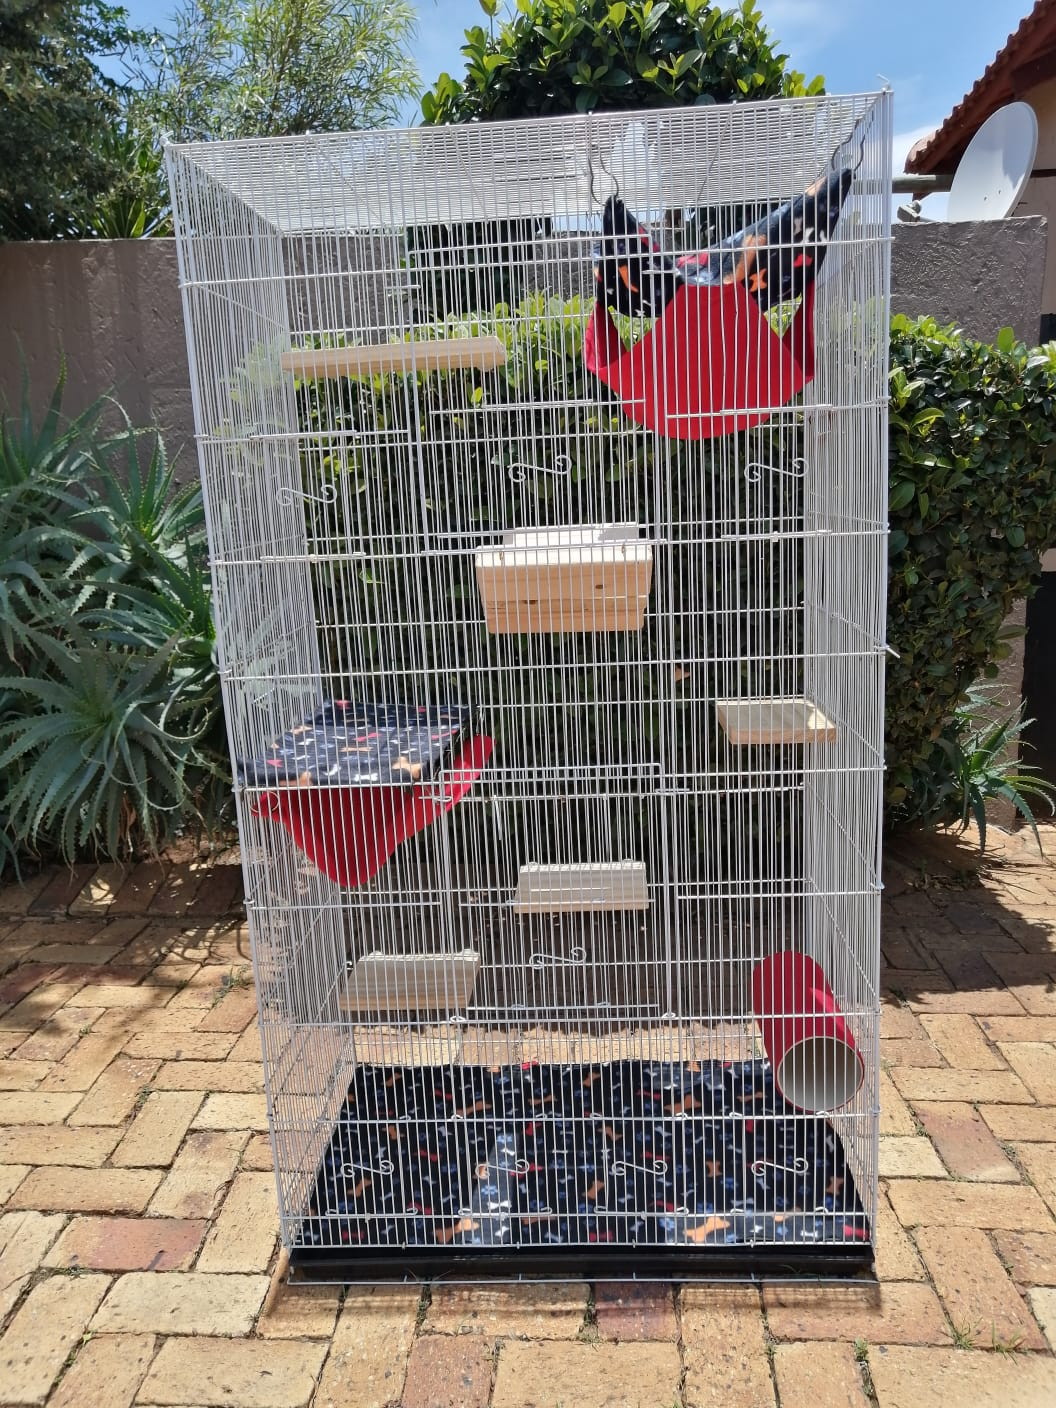 XLARGE chinchilla budget cages